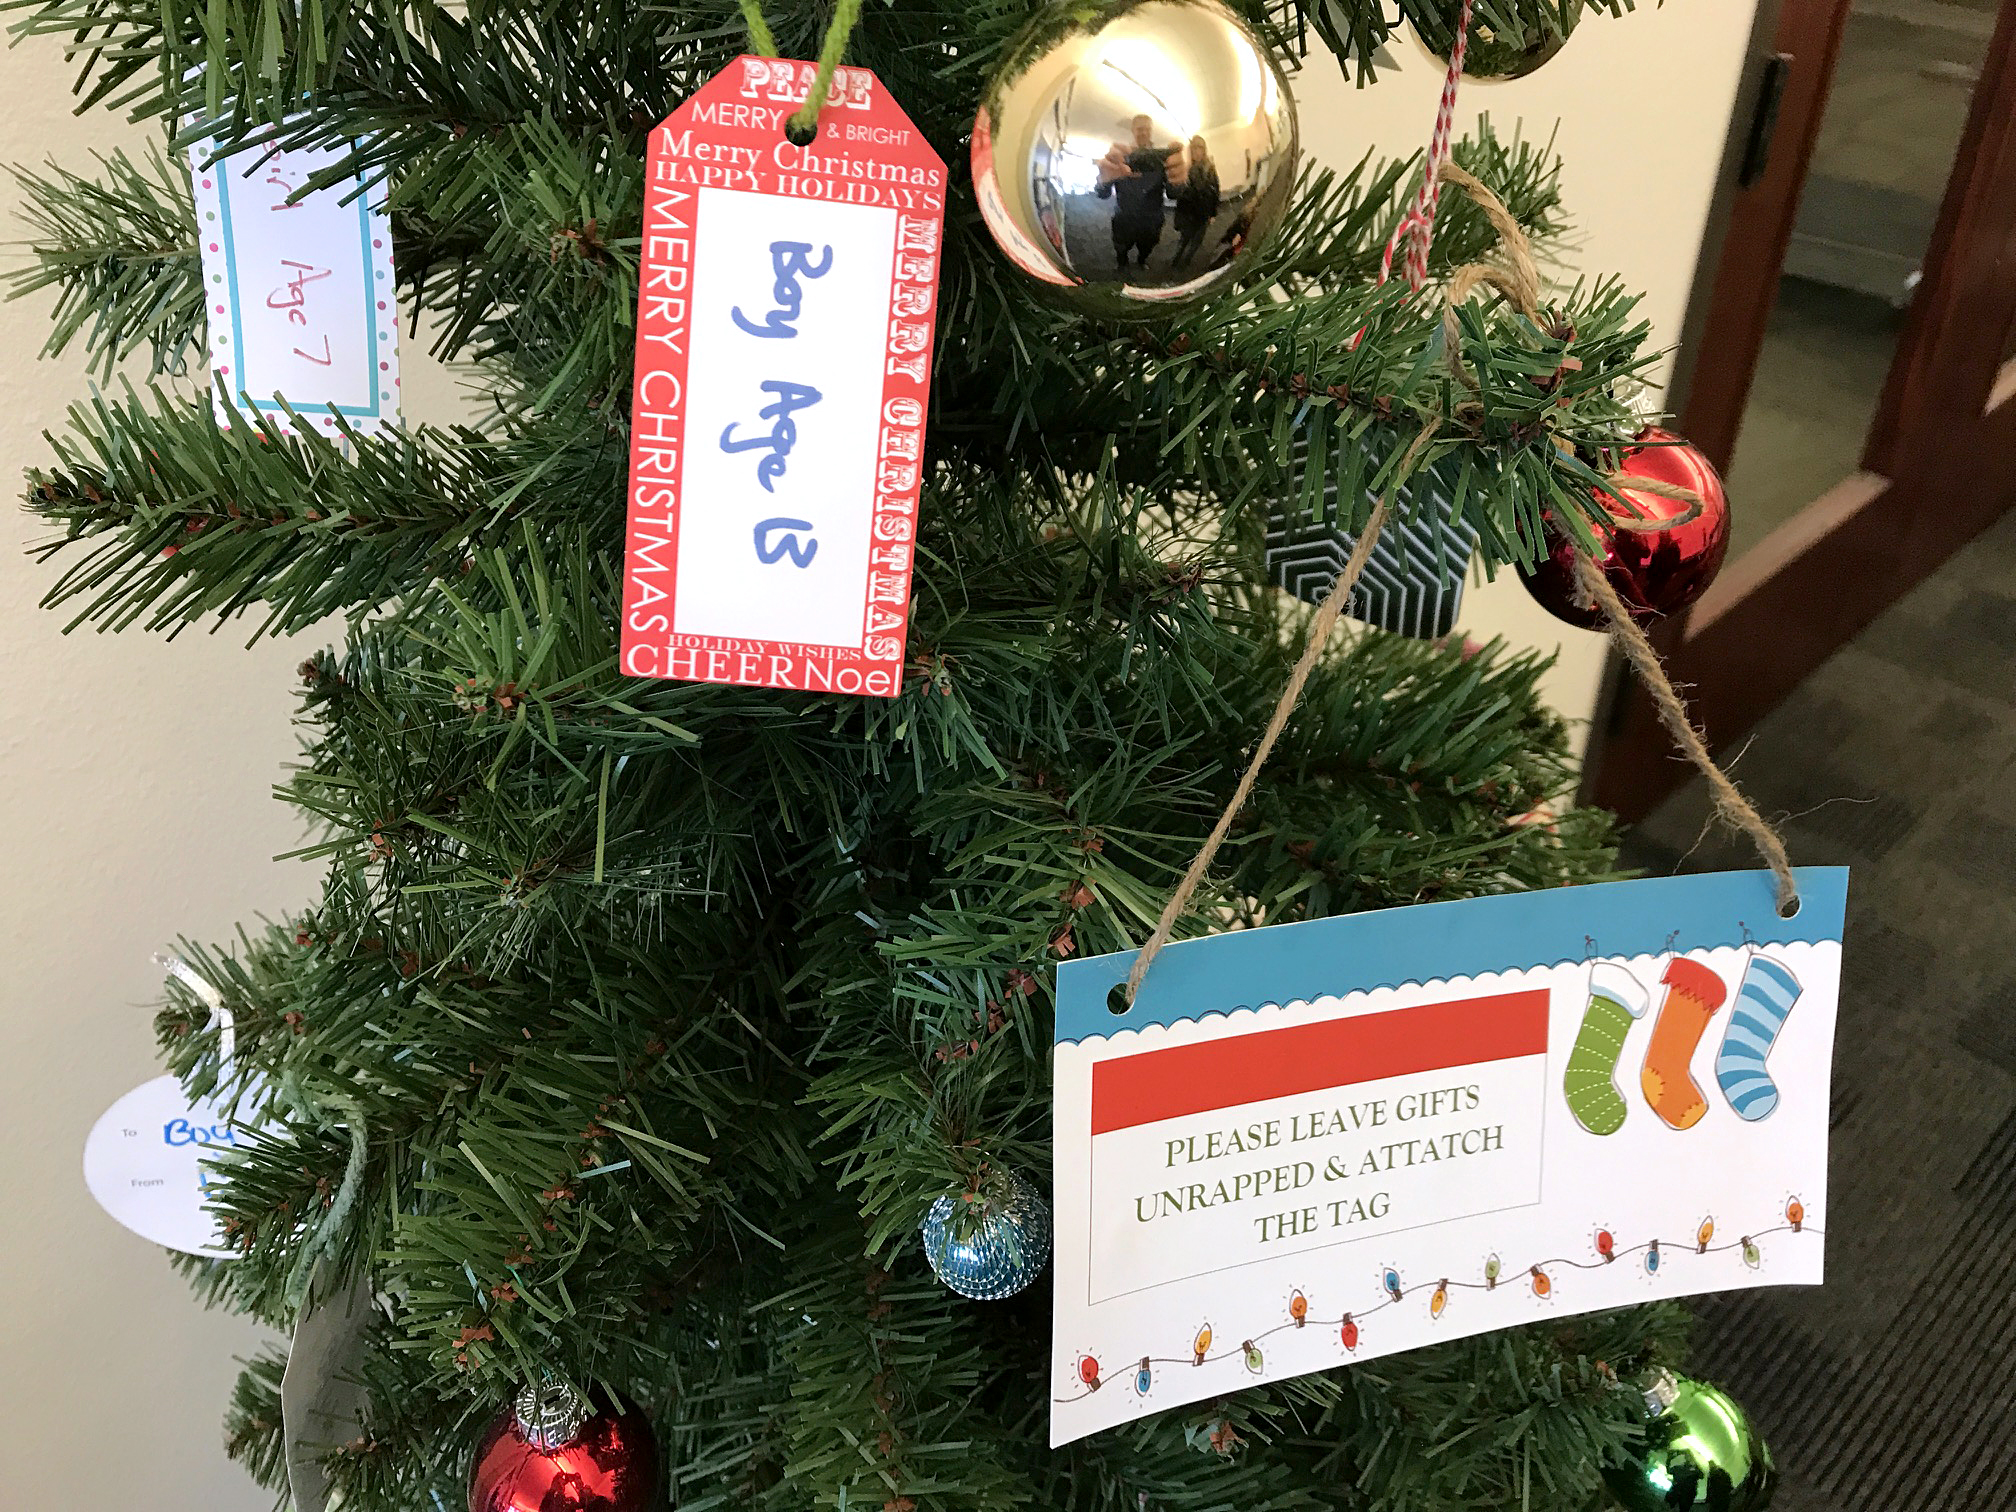 CWI Donation Drives. The 9th Annual CWI Giving Tree gift drive is in full swing at the College!